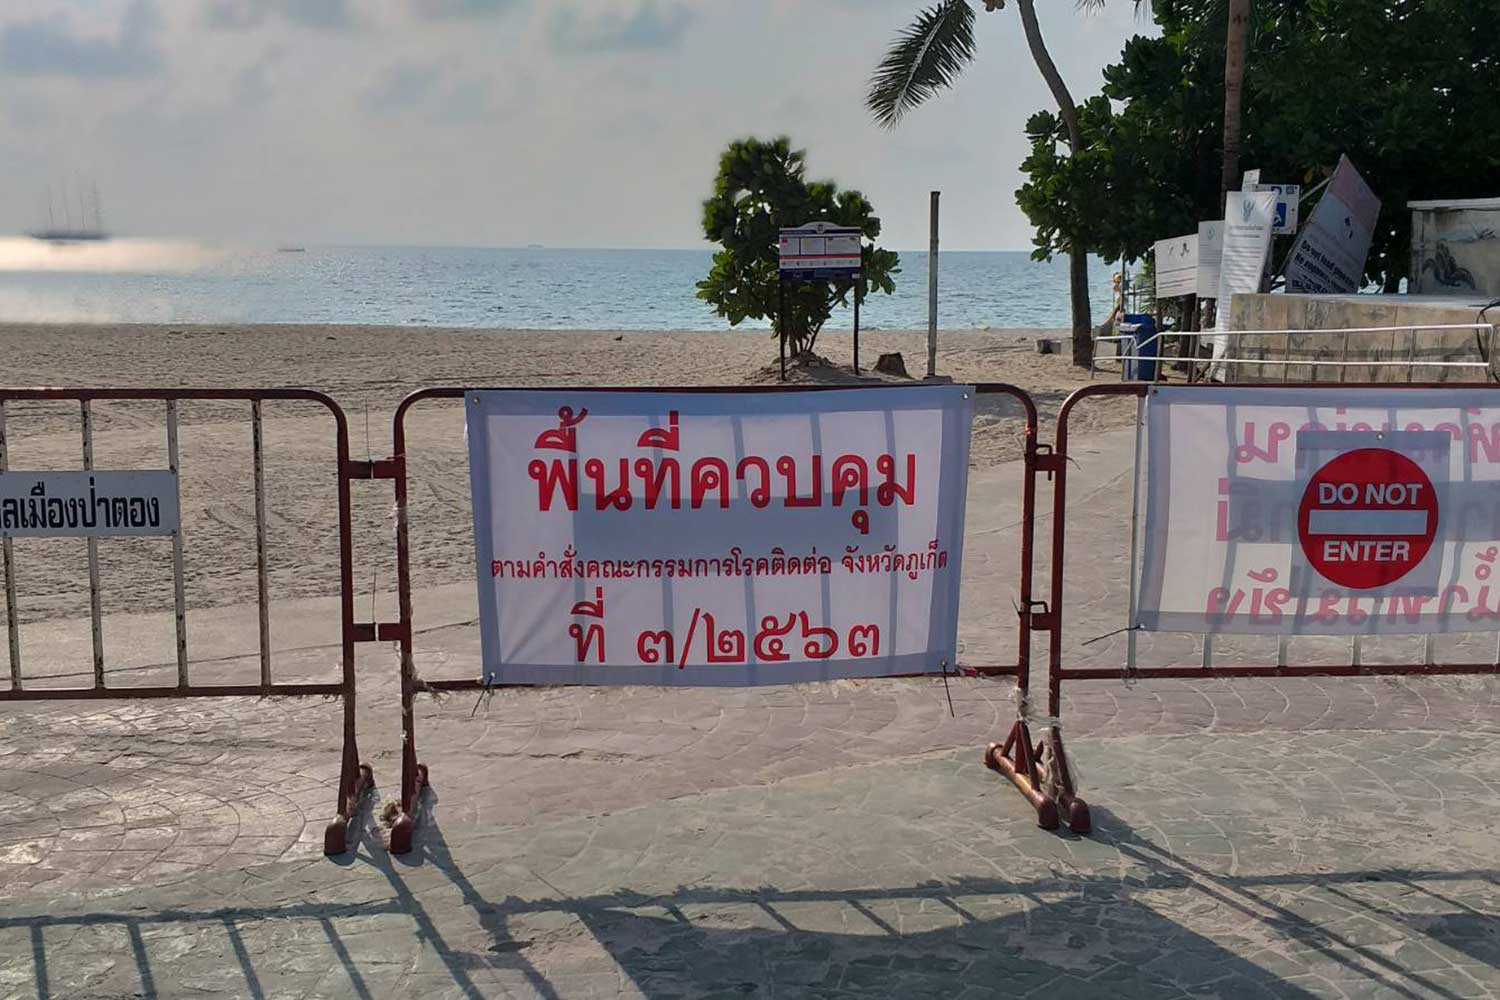 Patong beach in Phuket remains closed. The number of confirmed Covid-19 cases in Phuket province rose to 161 on Thursday. (File photo)